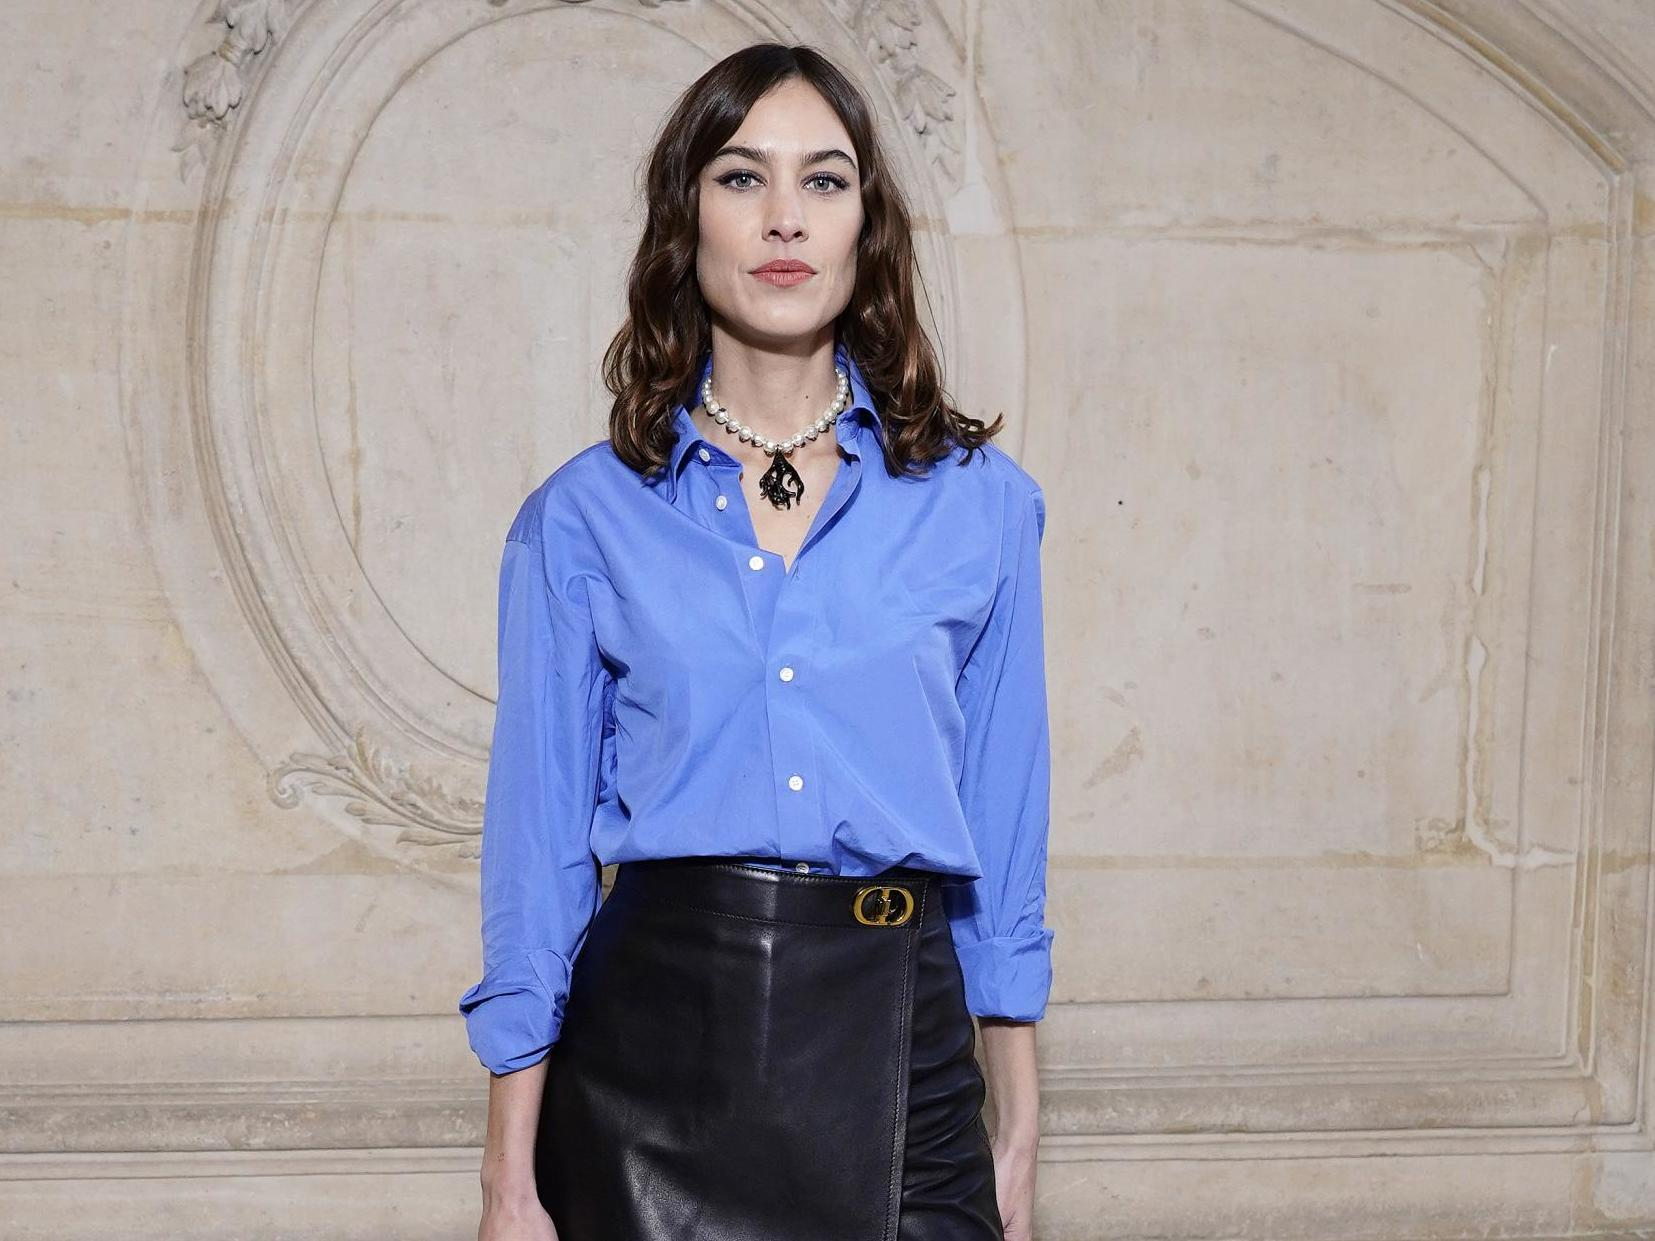 Alexa Chung reveals it should have felt weird to be dating 40-year-old photographer when she was 19